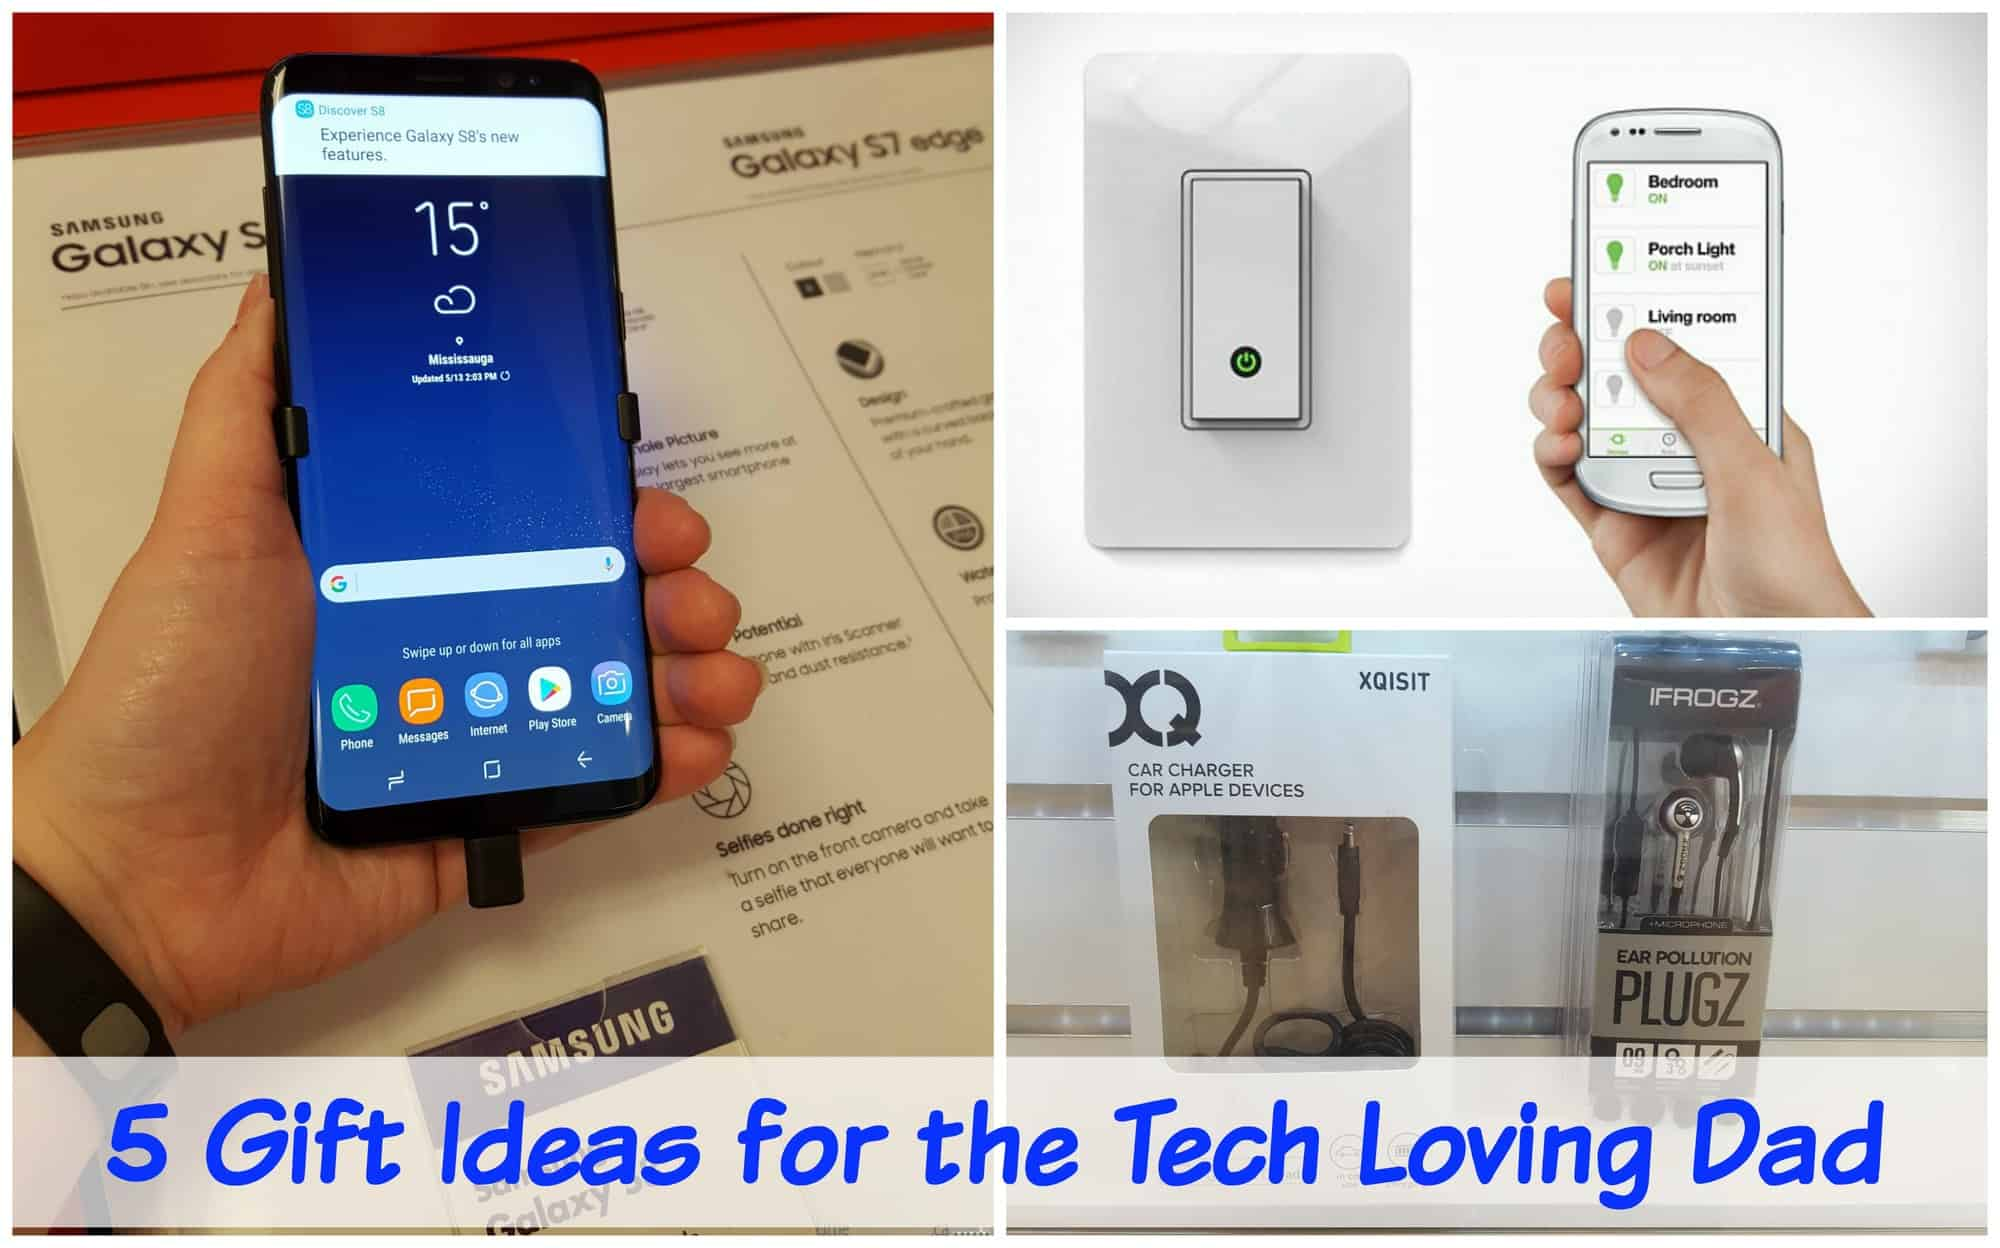 5 Gift Ideas for the Tech Loving Dad